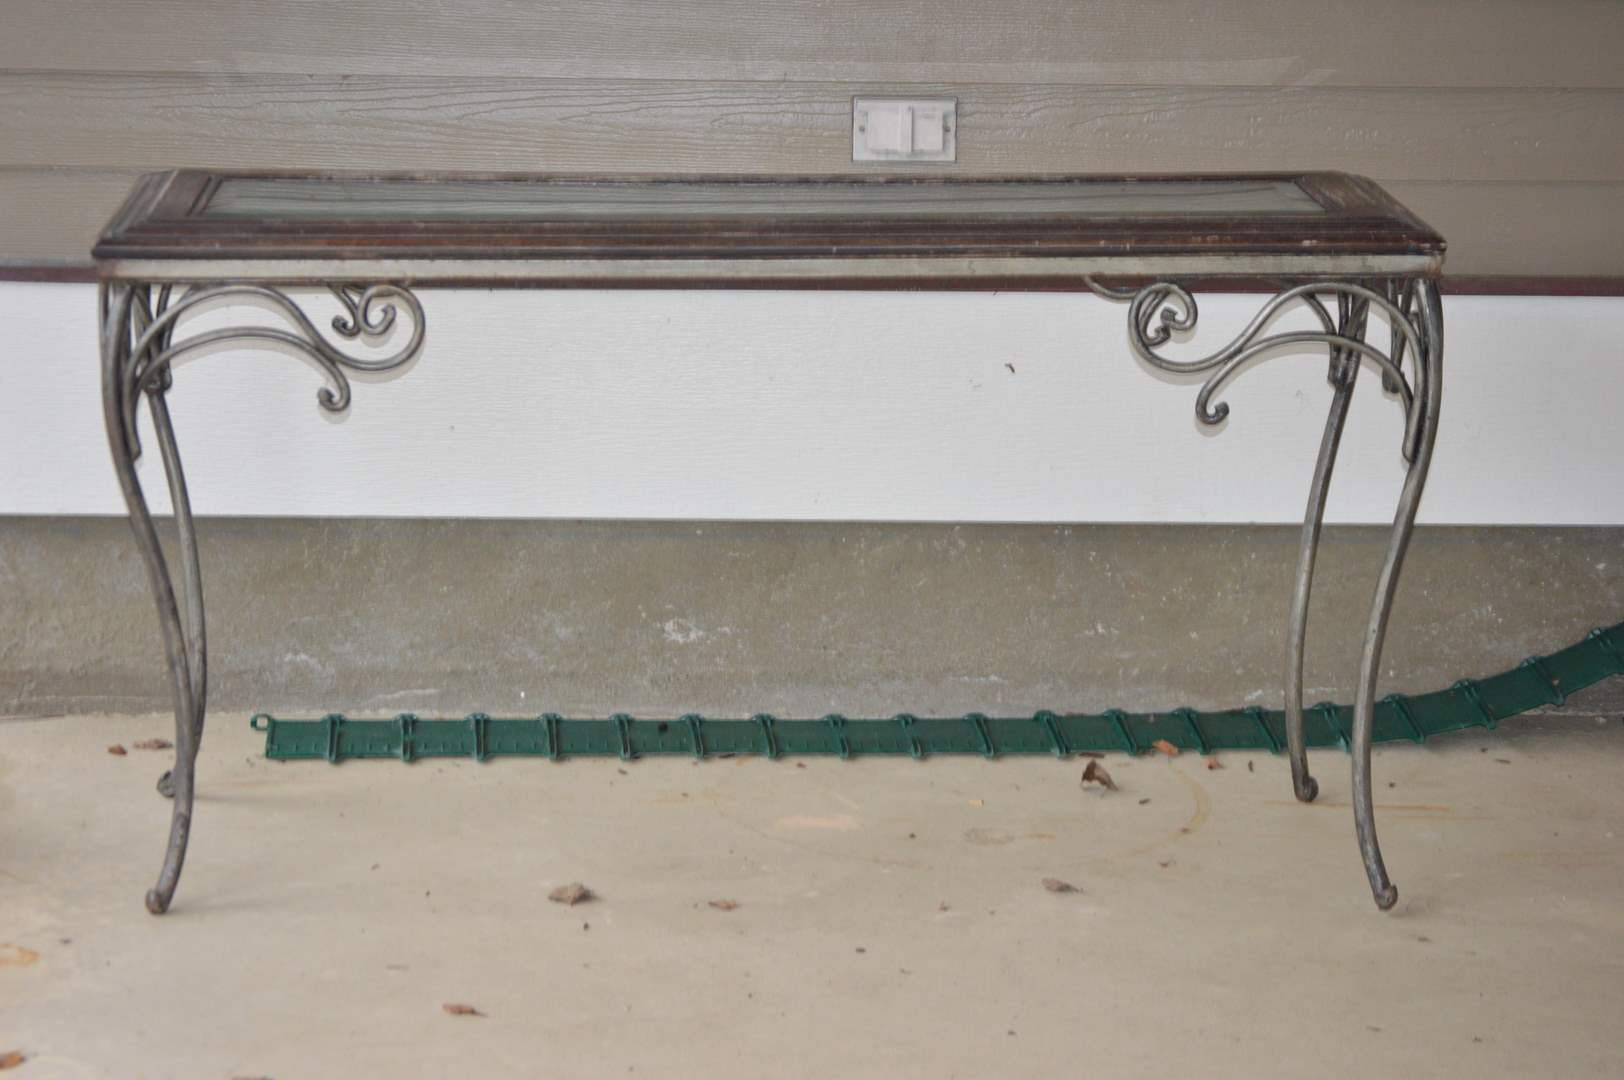 Lot # 93 Wrought iron & wood couch table w/ glass top (main image)